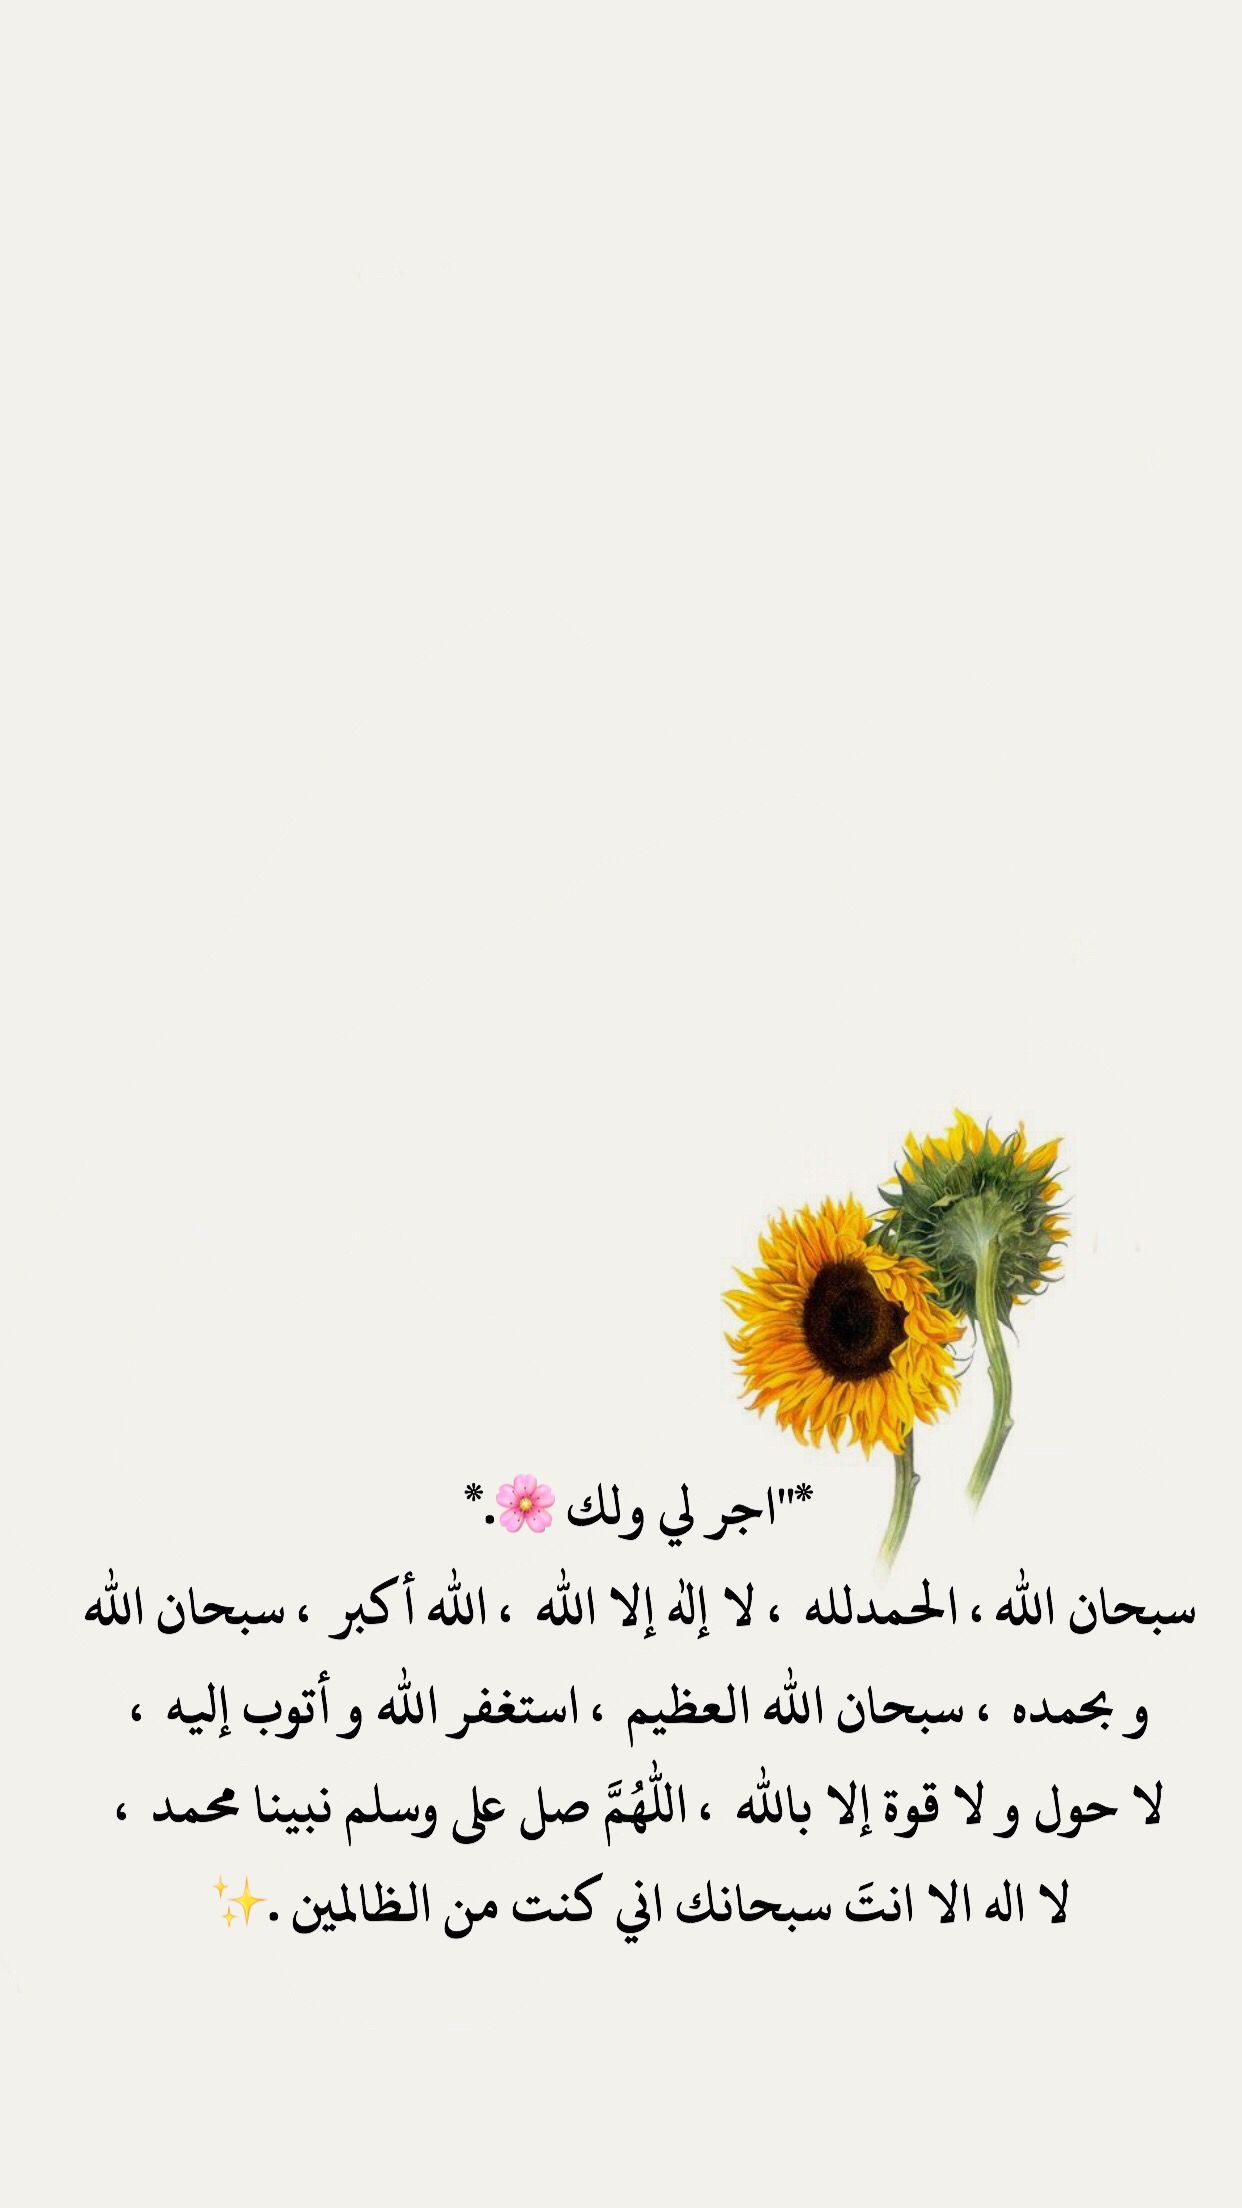 Pin By Hanan Alkadi On اذكار Cute Inspirational Quotes Quran Quotes Inspirational Funny Arabic Quotes